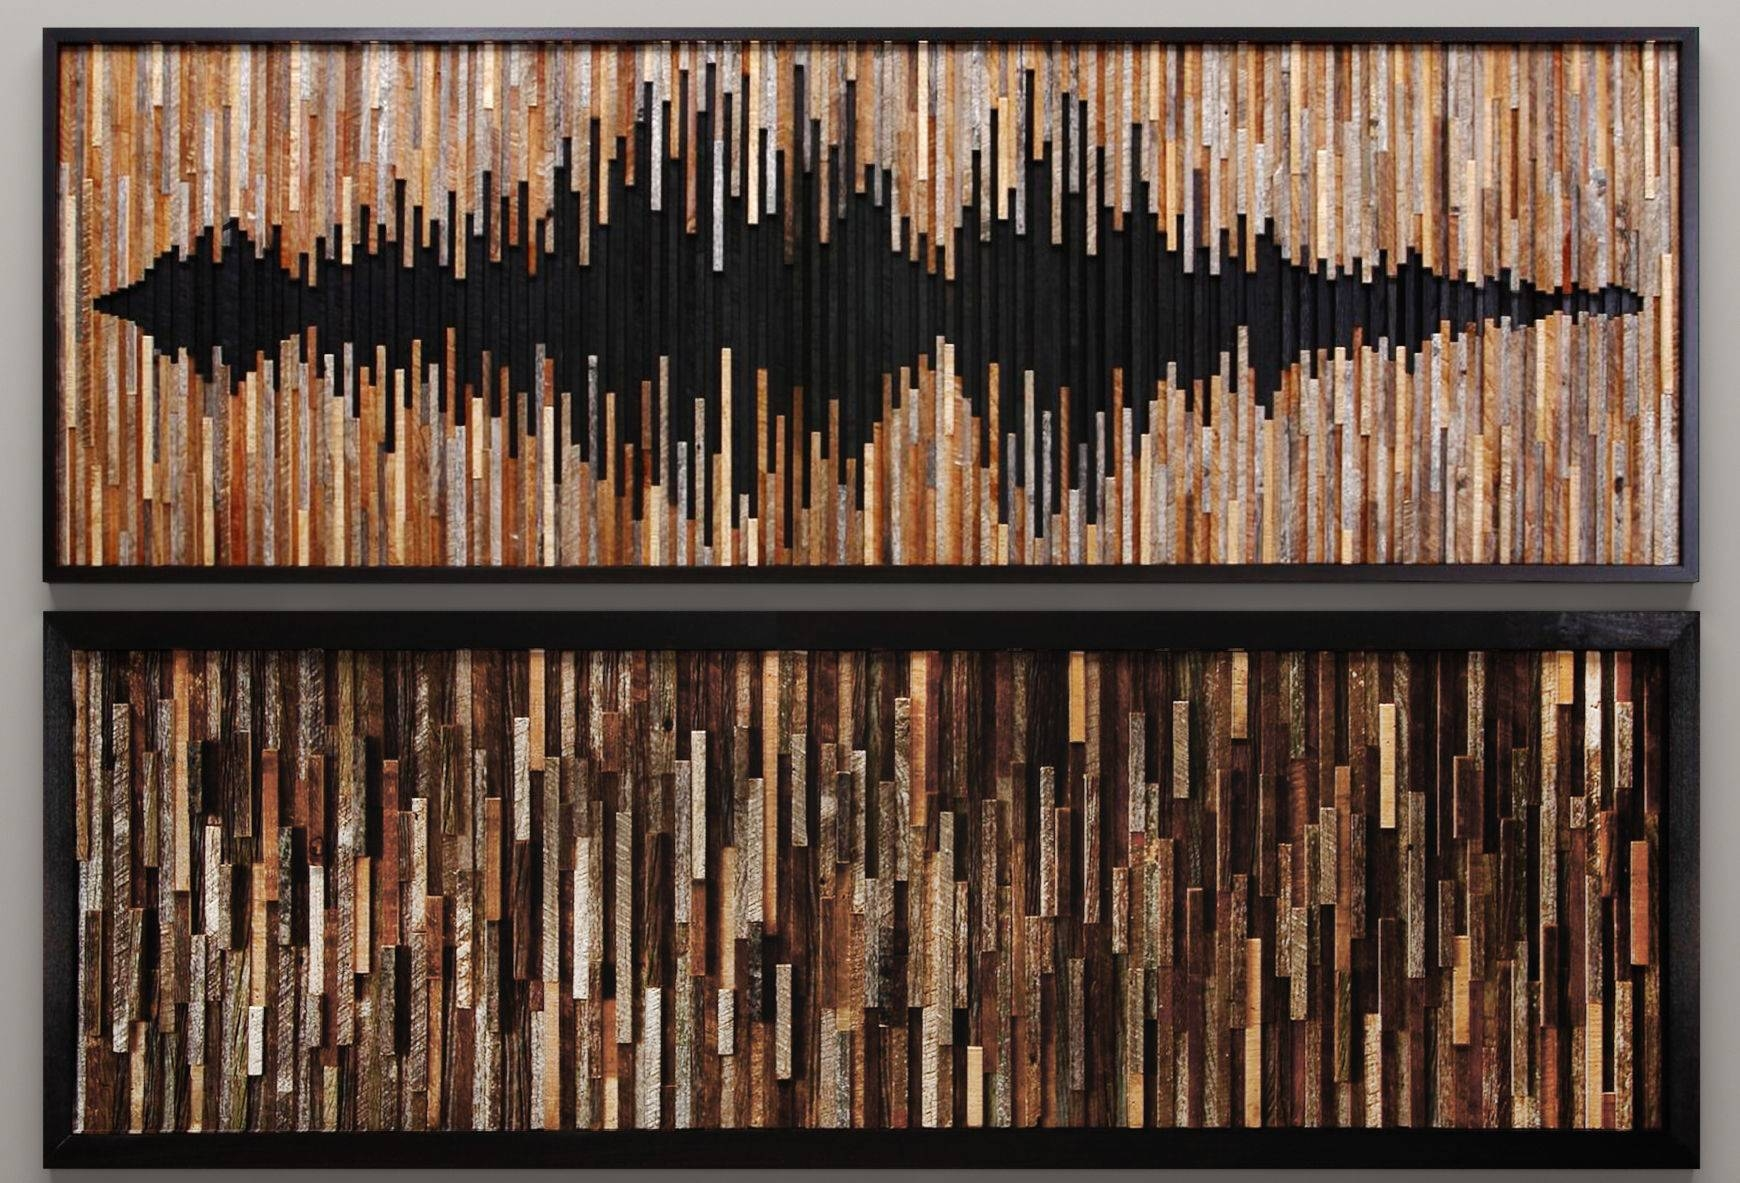 Wood Wall Art 46 3D Model | Cgtrader Intended For Most Current 3D Wall Art (View 29 of 30)